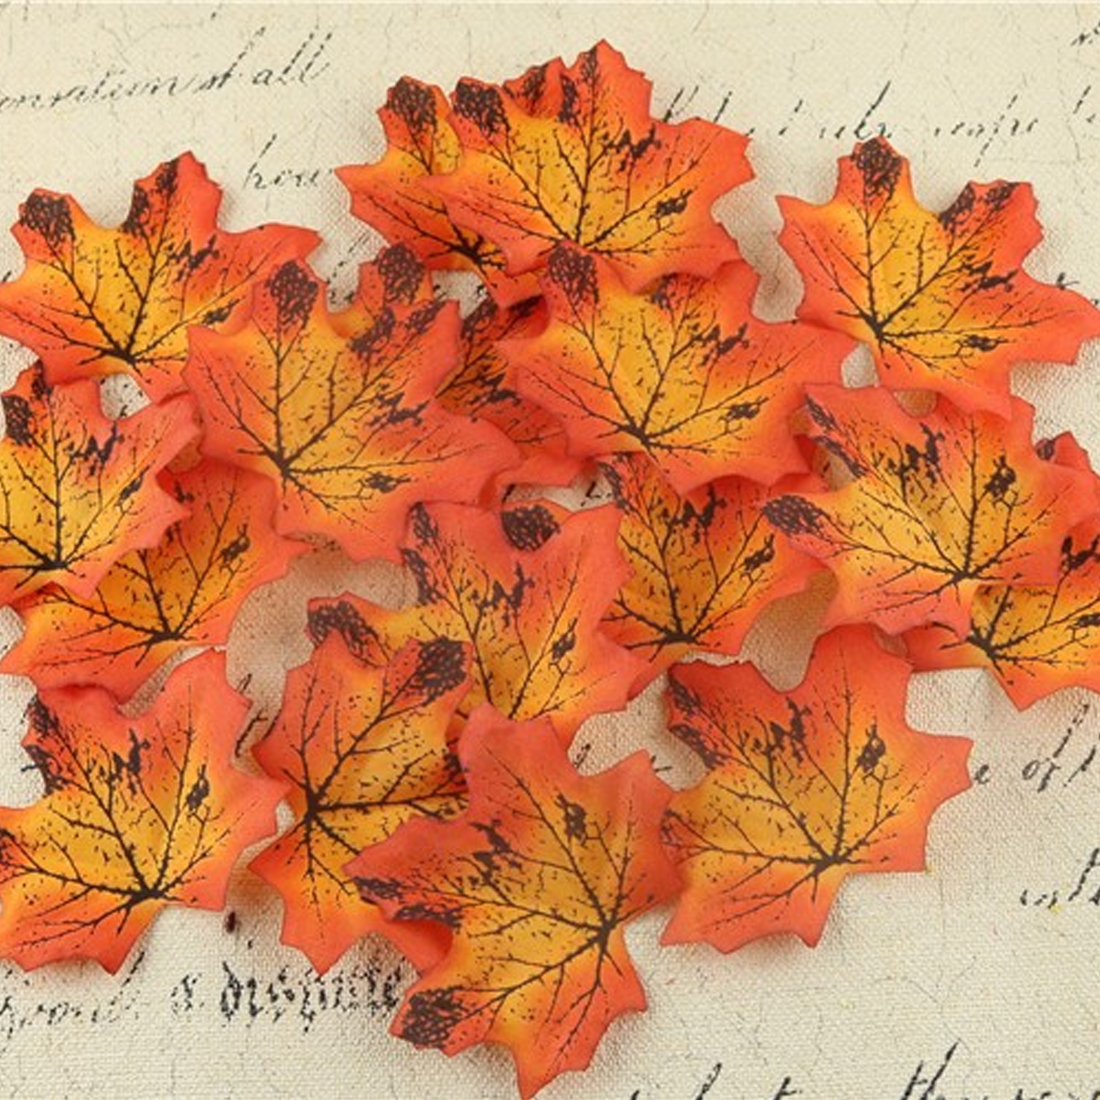 100Pcs/lot Artidicial Silk Maple Leaves Multicolor Fake Fall Leaf For Art Scrapbooking Wedding Party Decoration Craft